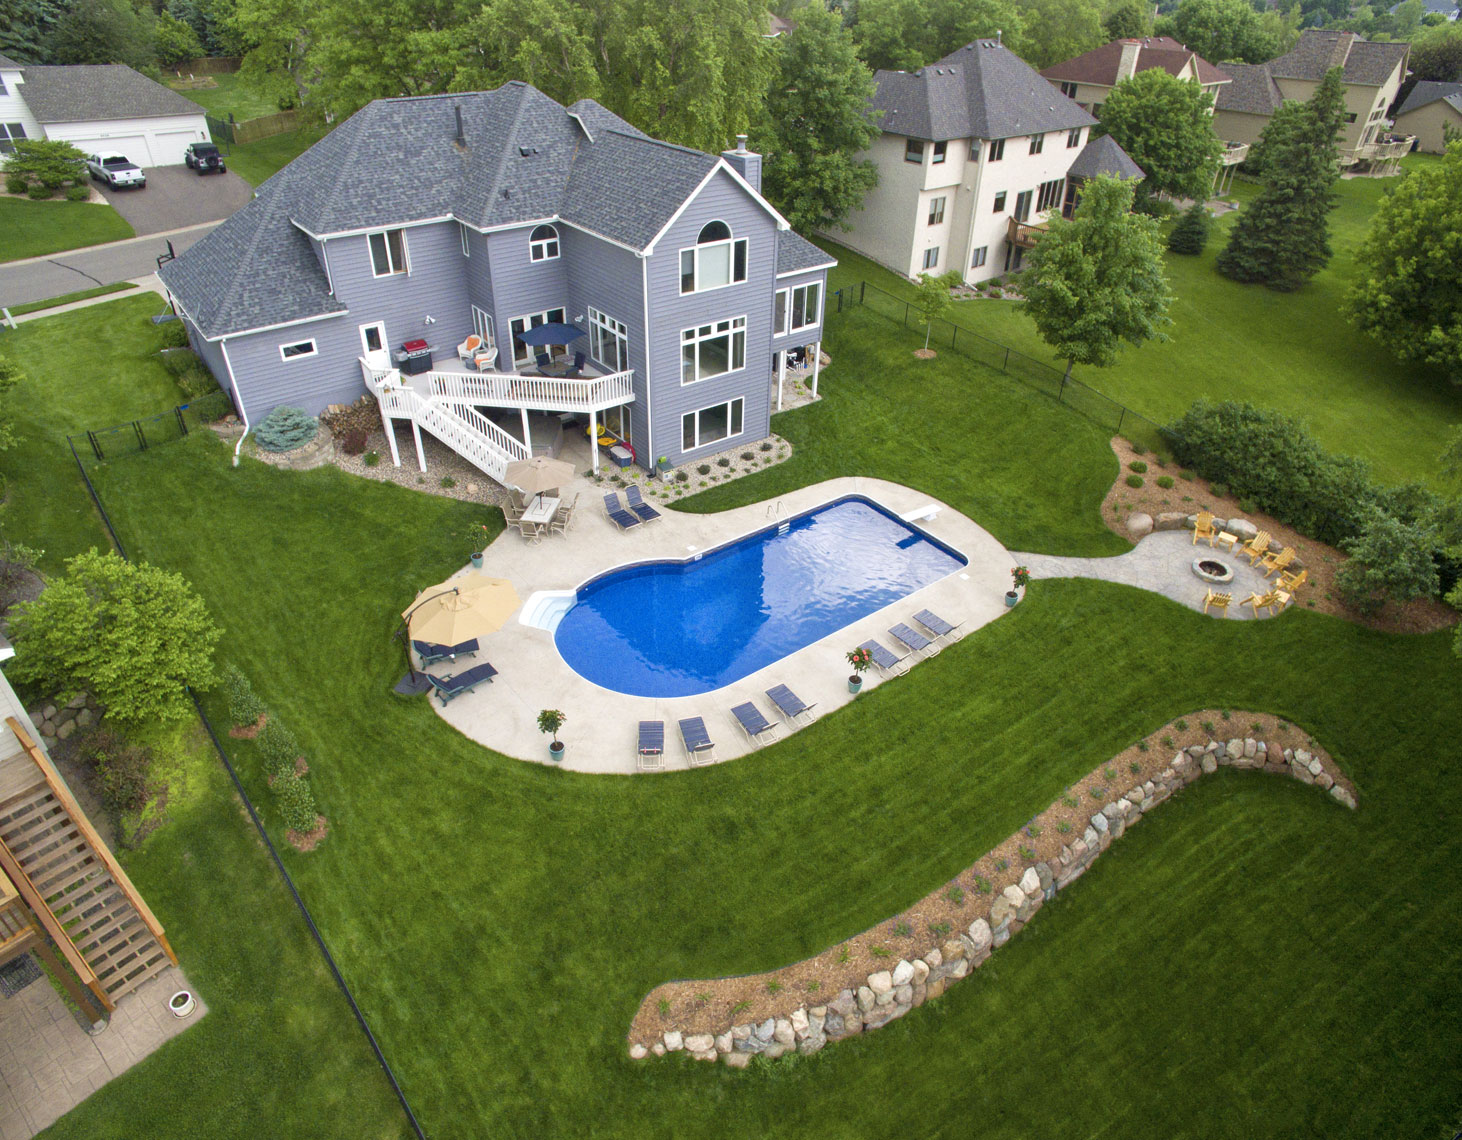 3 story grey house/pool/white deck/arial drone photography